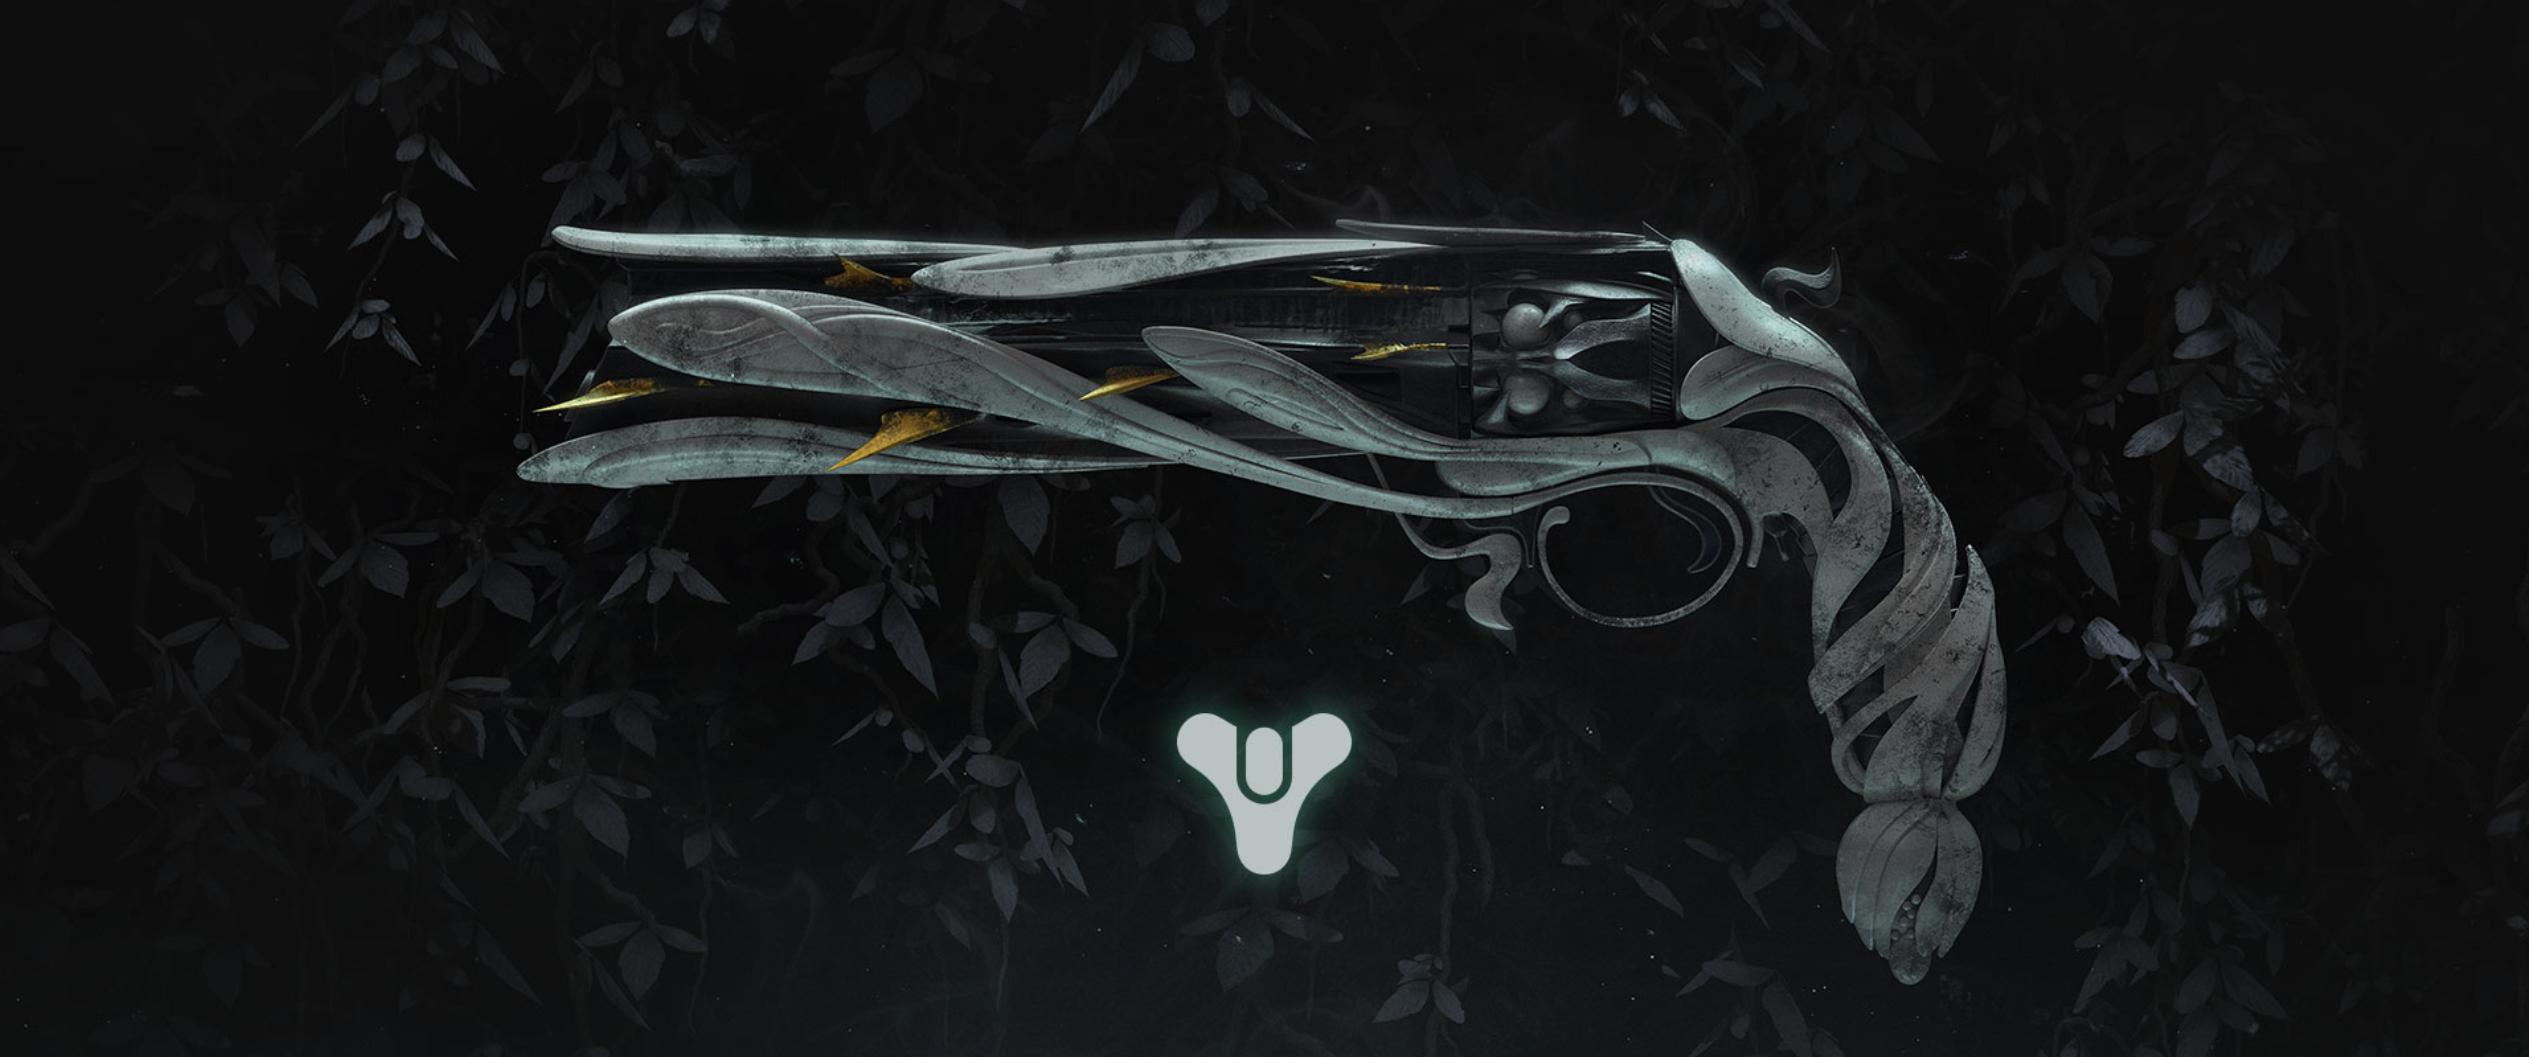 Destiny 2. EXOTIC QUEST!! How To Get The Lumina Exotic Hand Cannon! Solo Friendly Exotic Quest? Rose